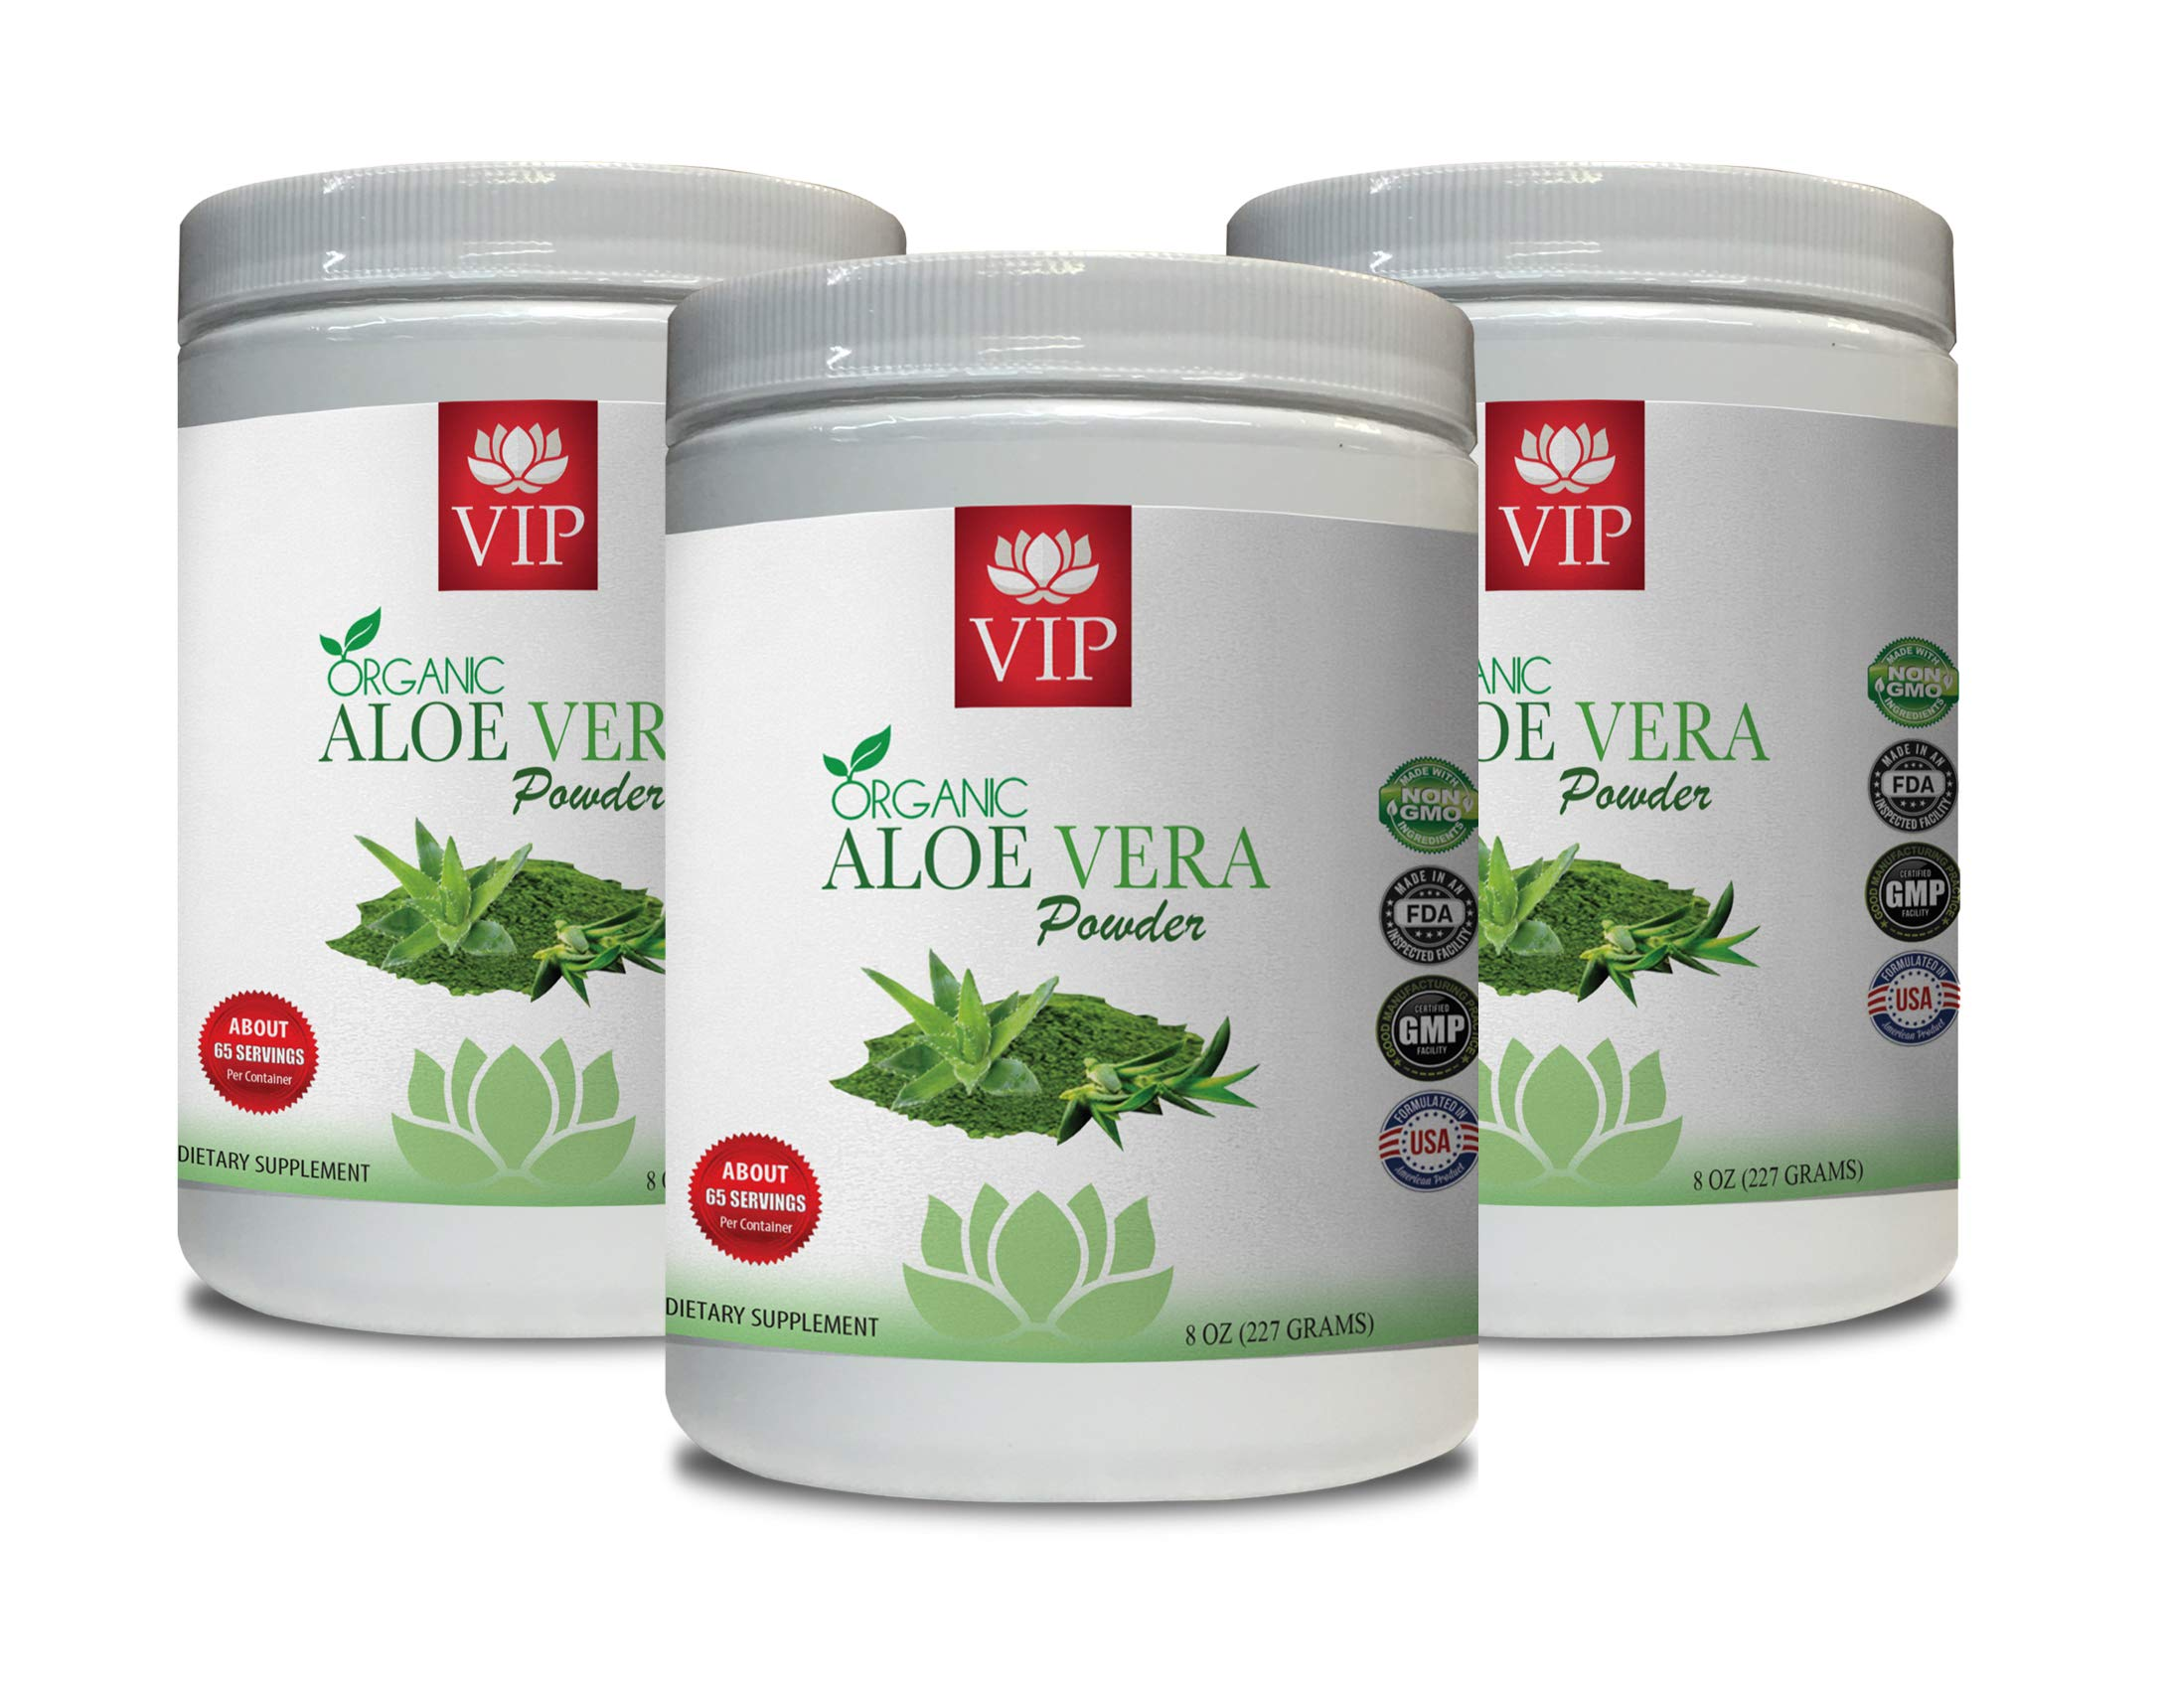 antioxidant Supplement Organic - Aloe Vera Organic Powder - Aloe Vera Bulk Supplements - 3 Cans 24 OZ (195 Servings)